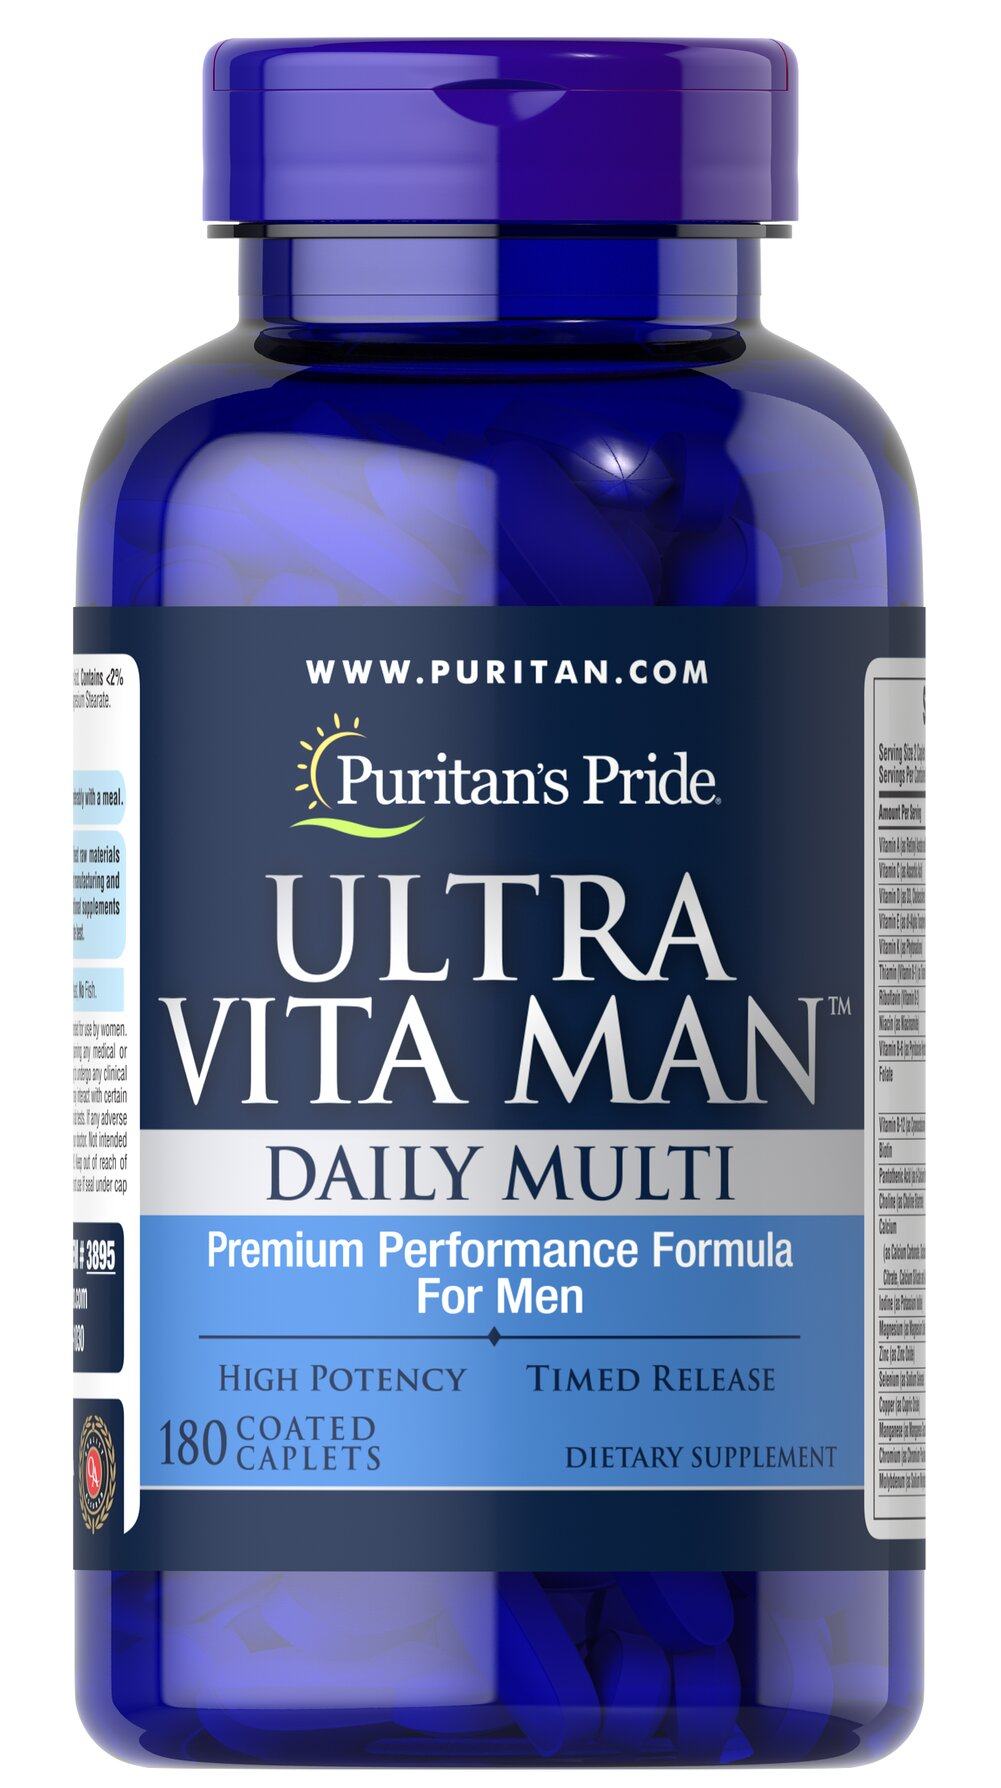 Ultra Vita Man™ Time Release <p>This time release multivitamins  delivers vitamins and minerals shown to be beneficial to men's overall wellness. From antioxidant and immune support to cardiovascular health, Ultra Vita Man is ideal for today's on-the-go men!**</p> <p>Diabetics/Hypoglycemics: Use only under a doctor's supervision because this product contains chromium which may enhance insulin sensitivity and may affect your blood glucose levels.</p> 180 Caplet